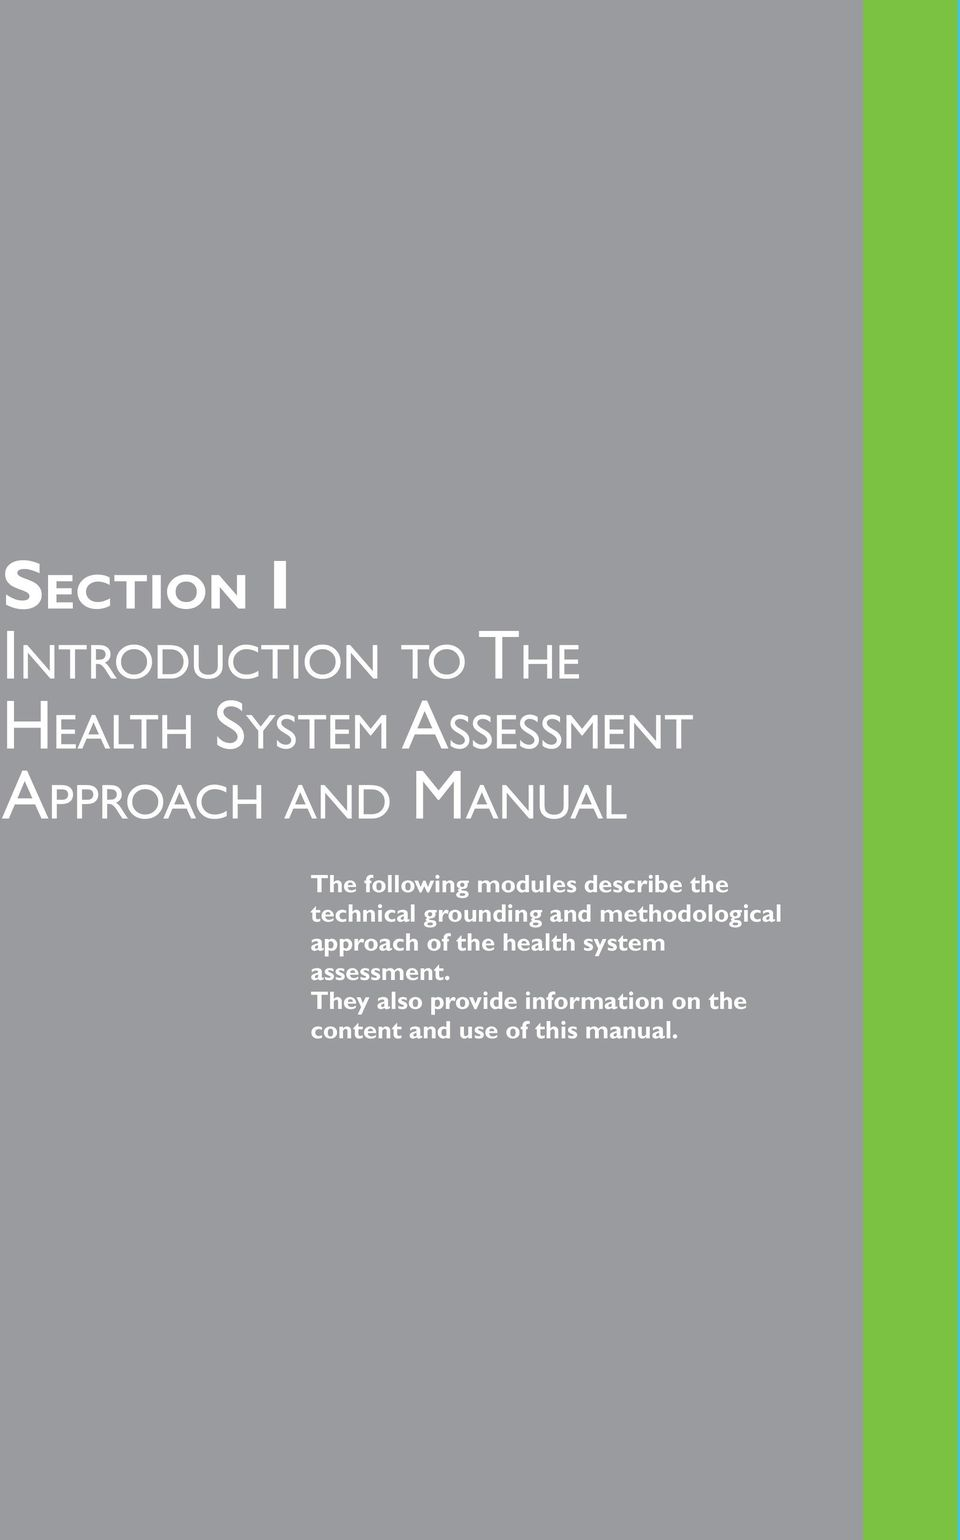 grounding and methodological approach of the health system